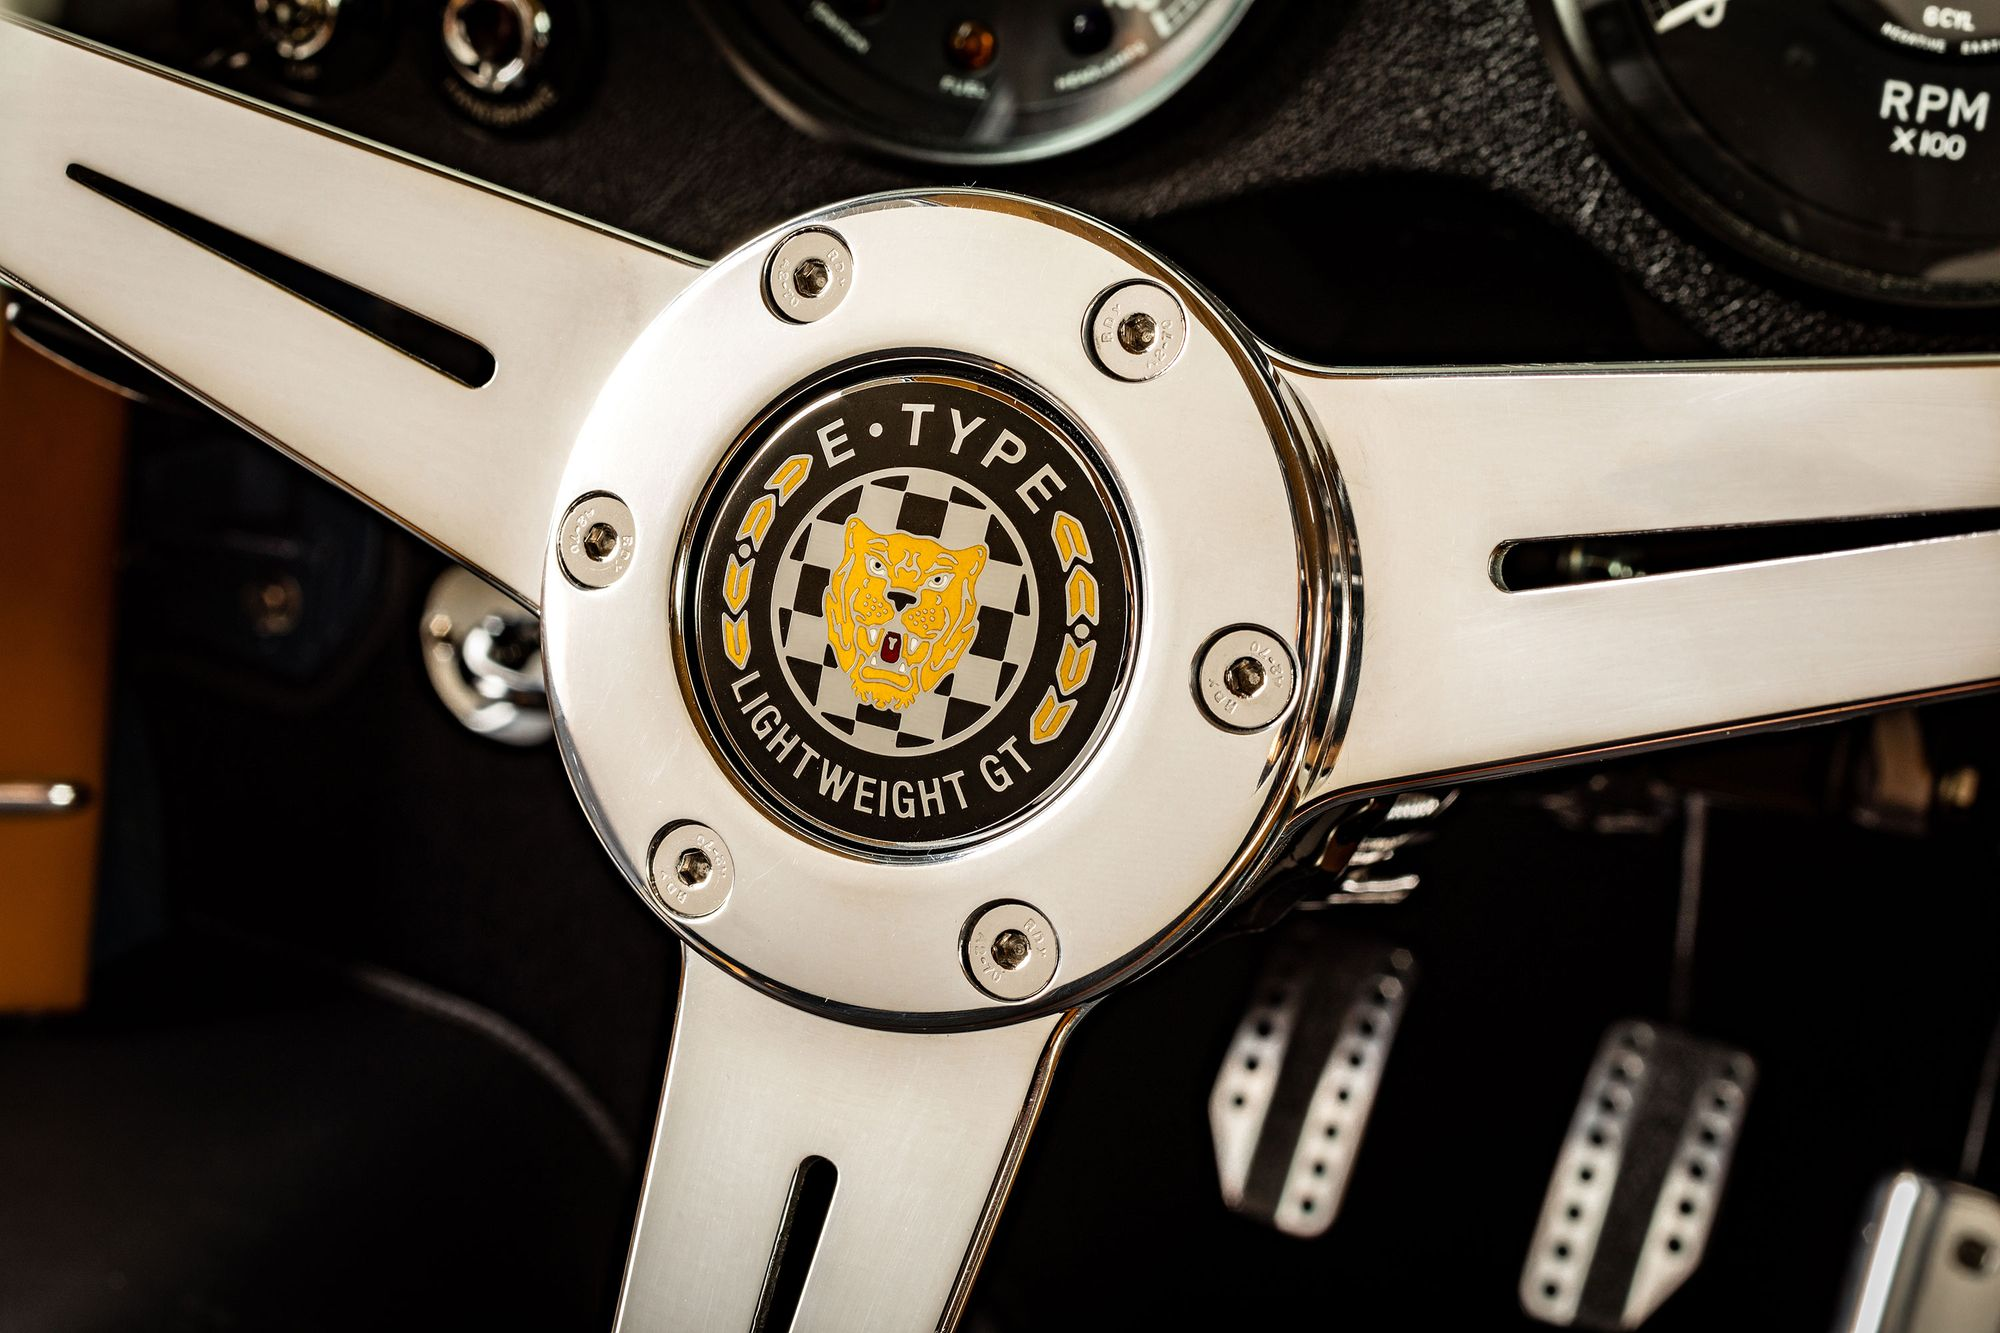 Eagle GT steering wheel